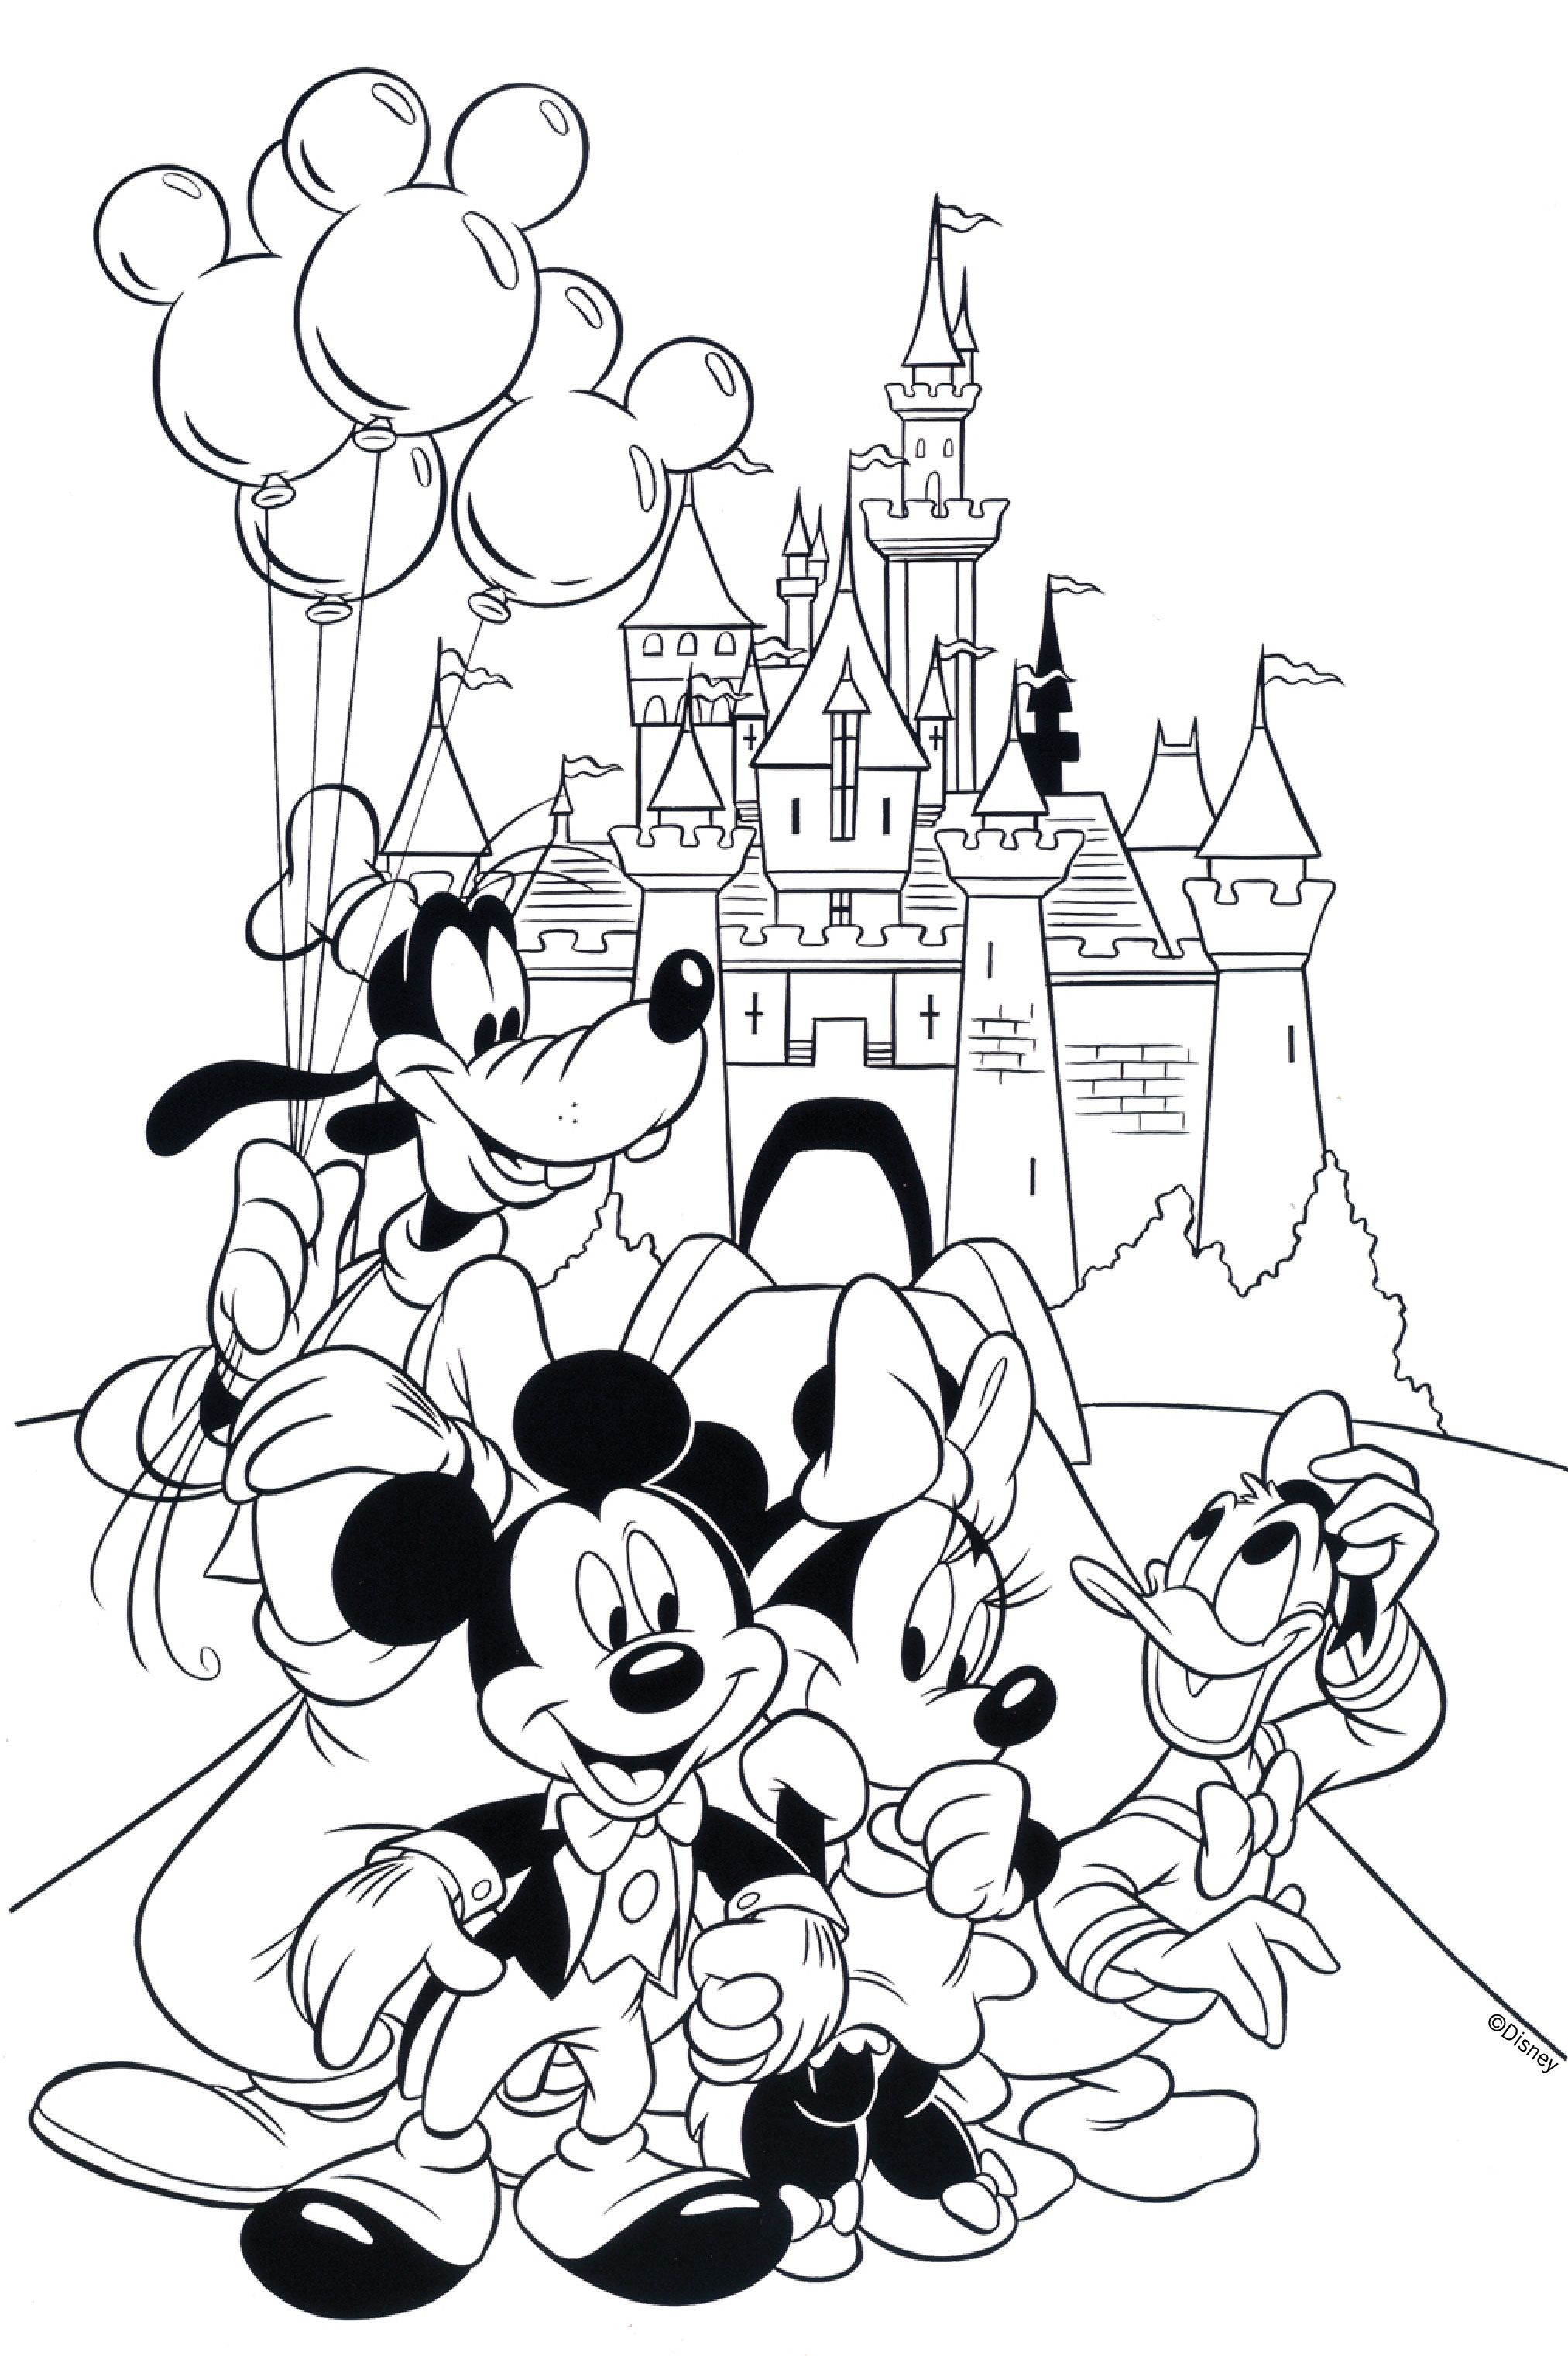 Free Disney Coloring Pages | Coloring Books | Pinterest | Disney ...